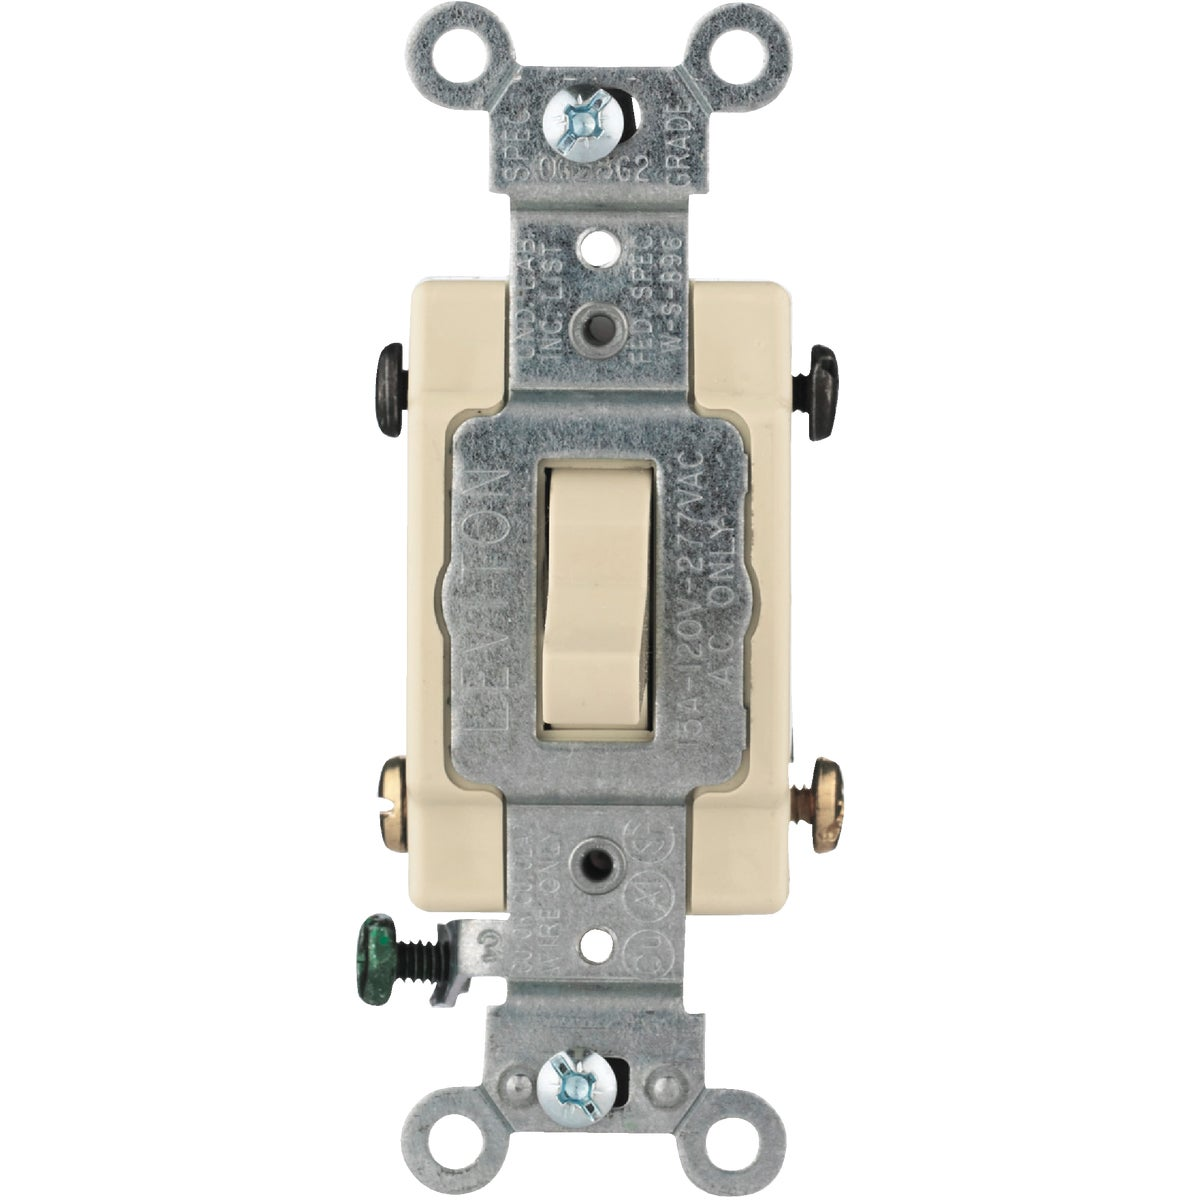 IV 4-WAY GRND SWITCH - S01-CS415-2IS by Leviton Mfg Co